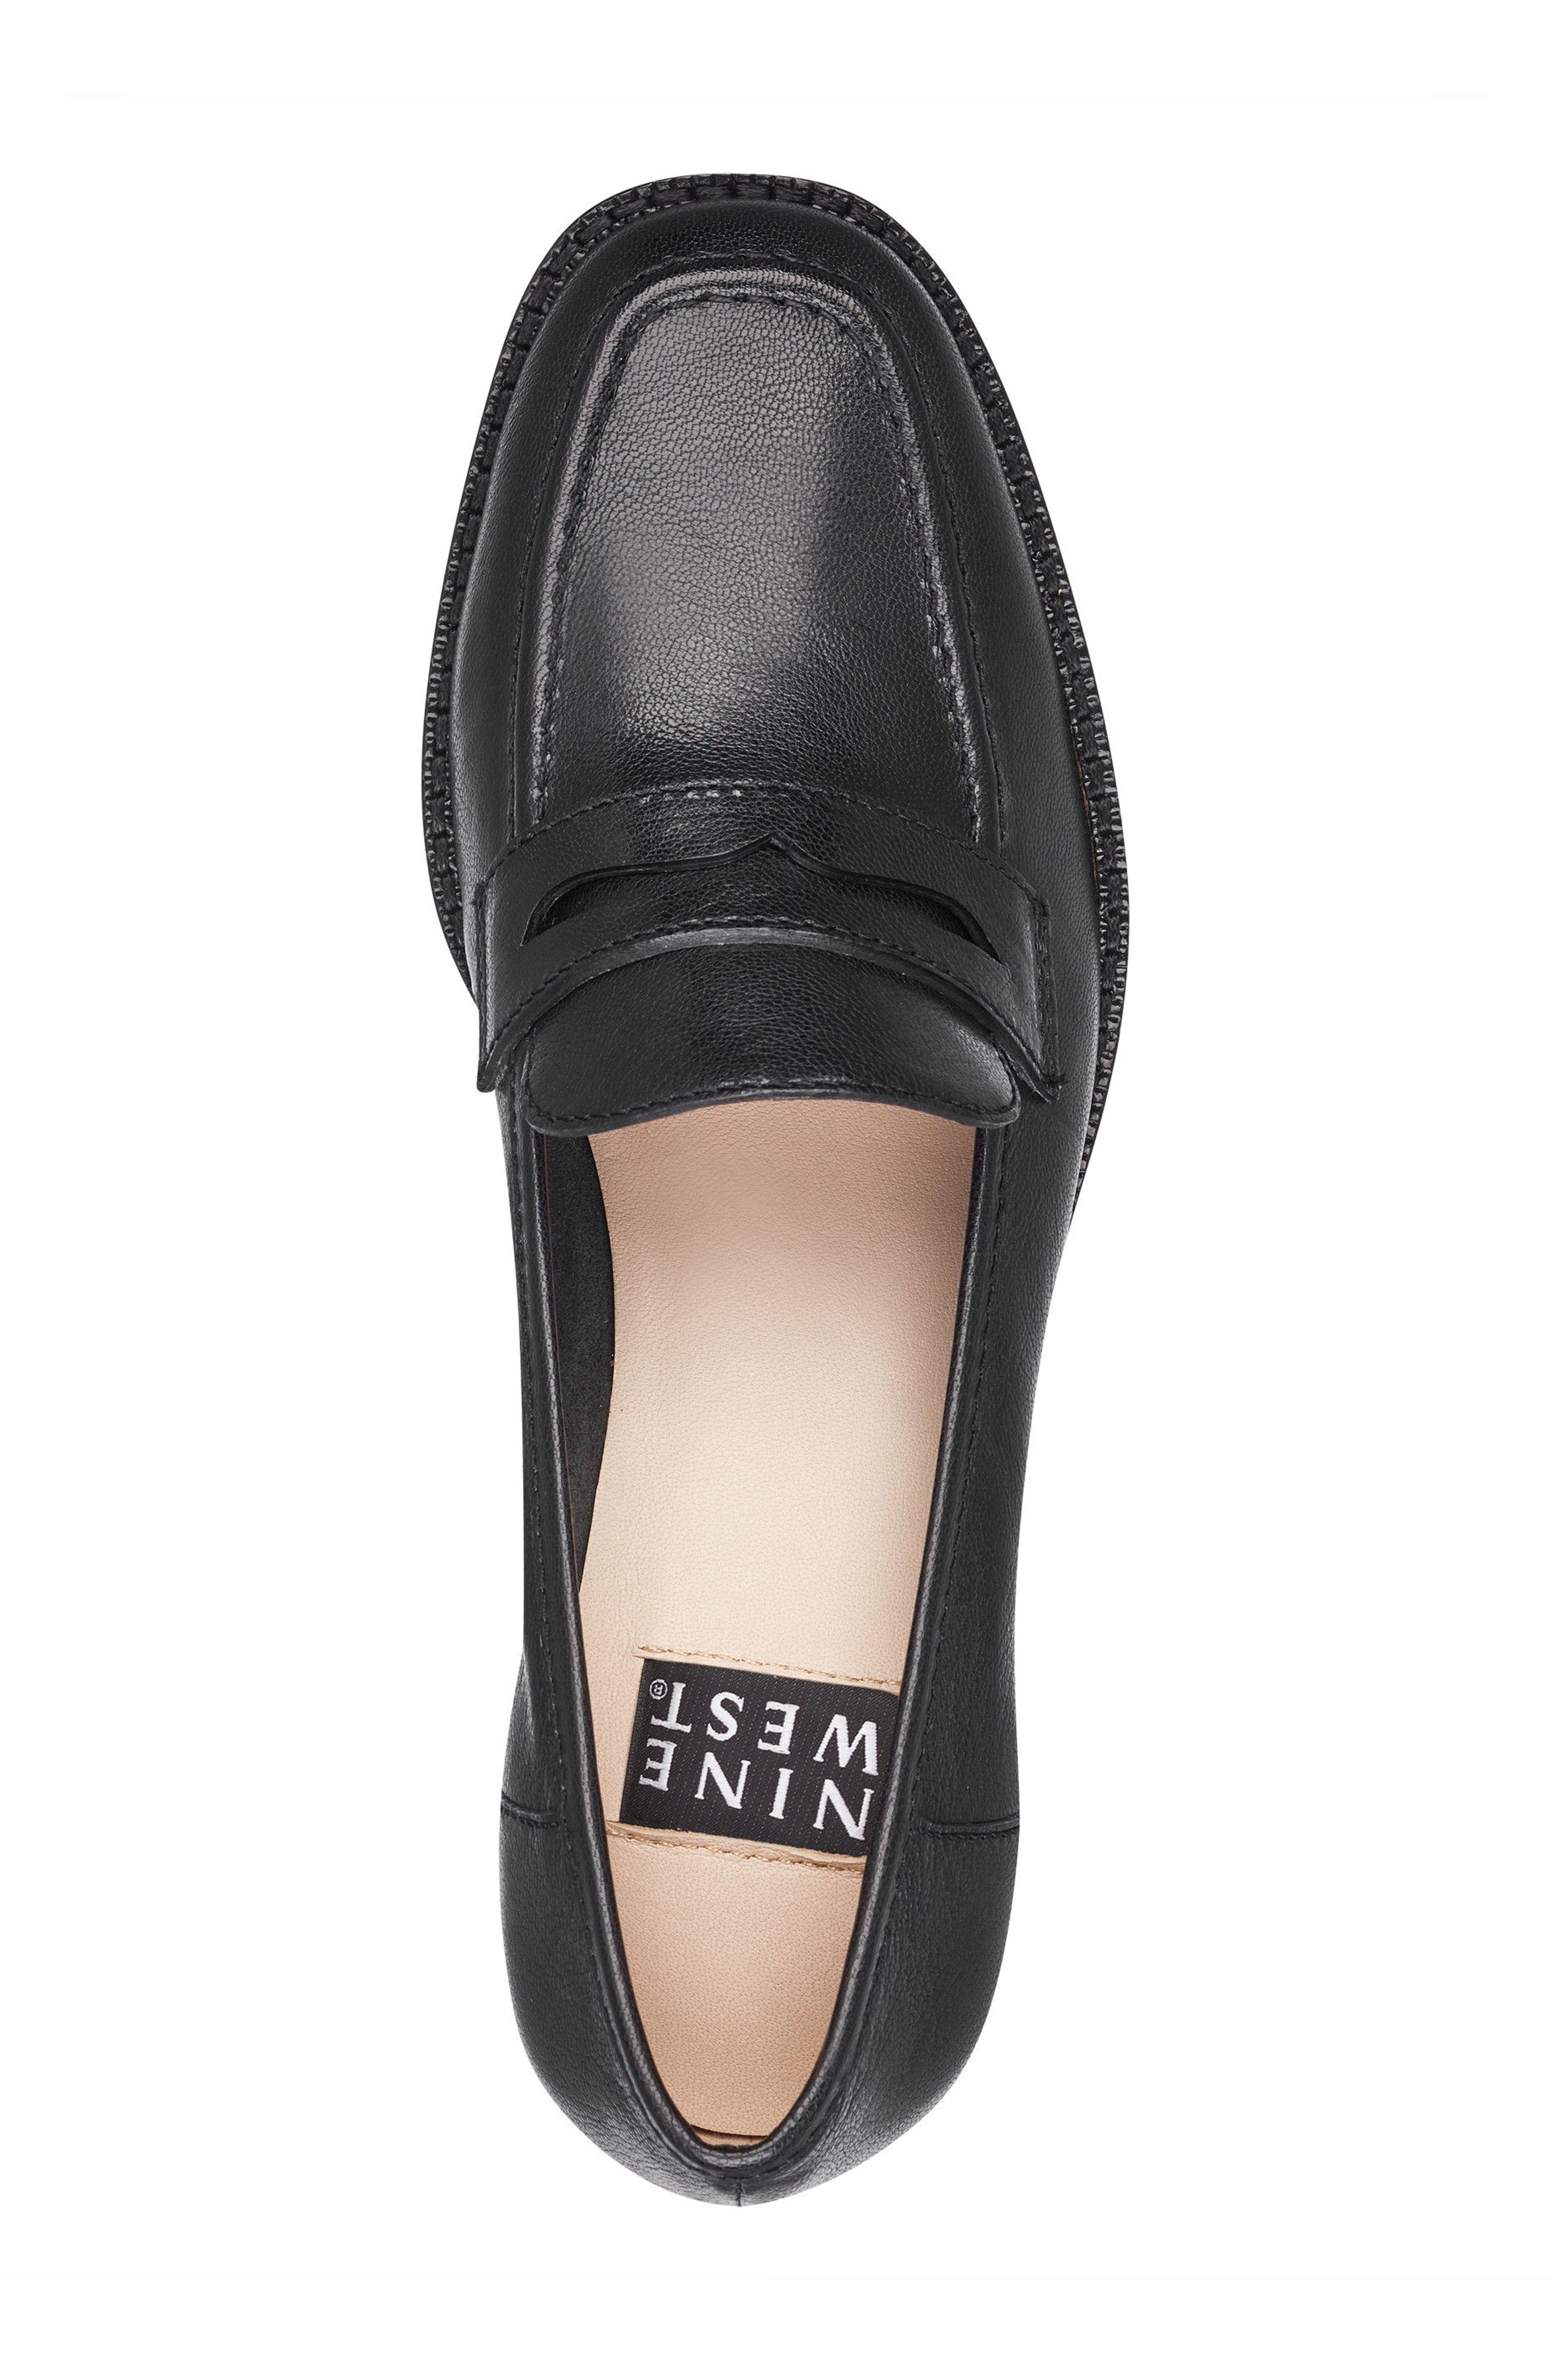 Kimmy - 40th Anniversary Capsule Collection Penny Loafer,                             Alternate thumbnail 5, color,                             BLACK LEATHER